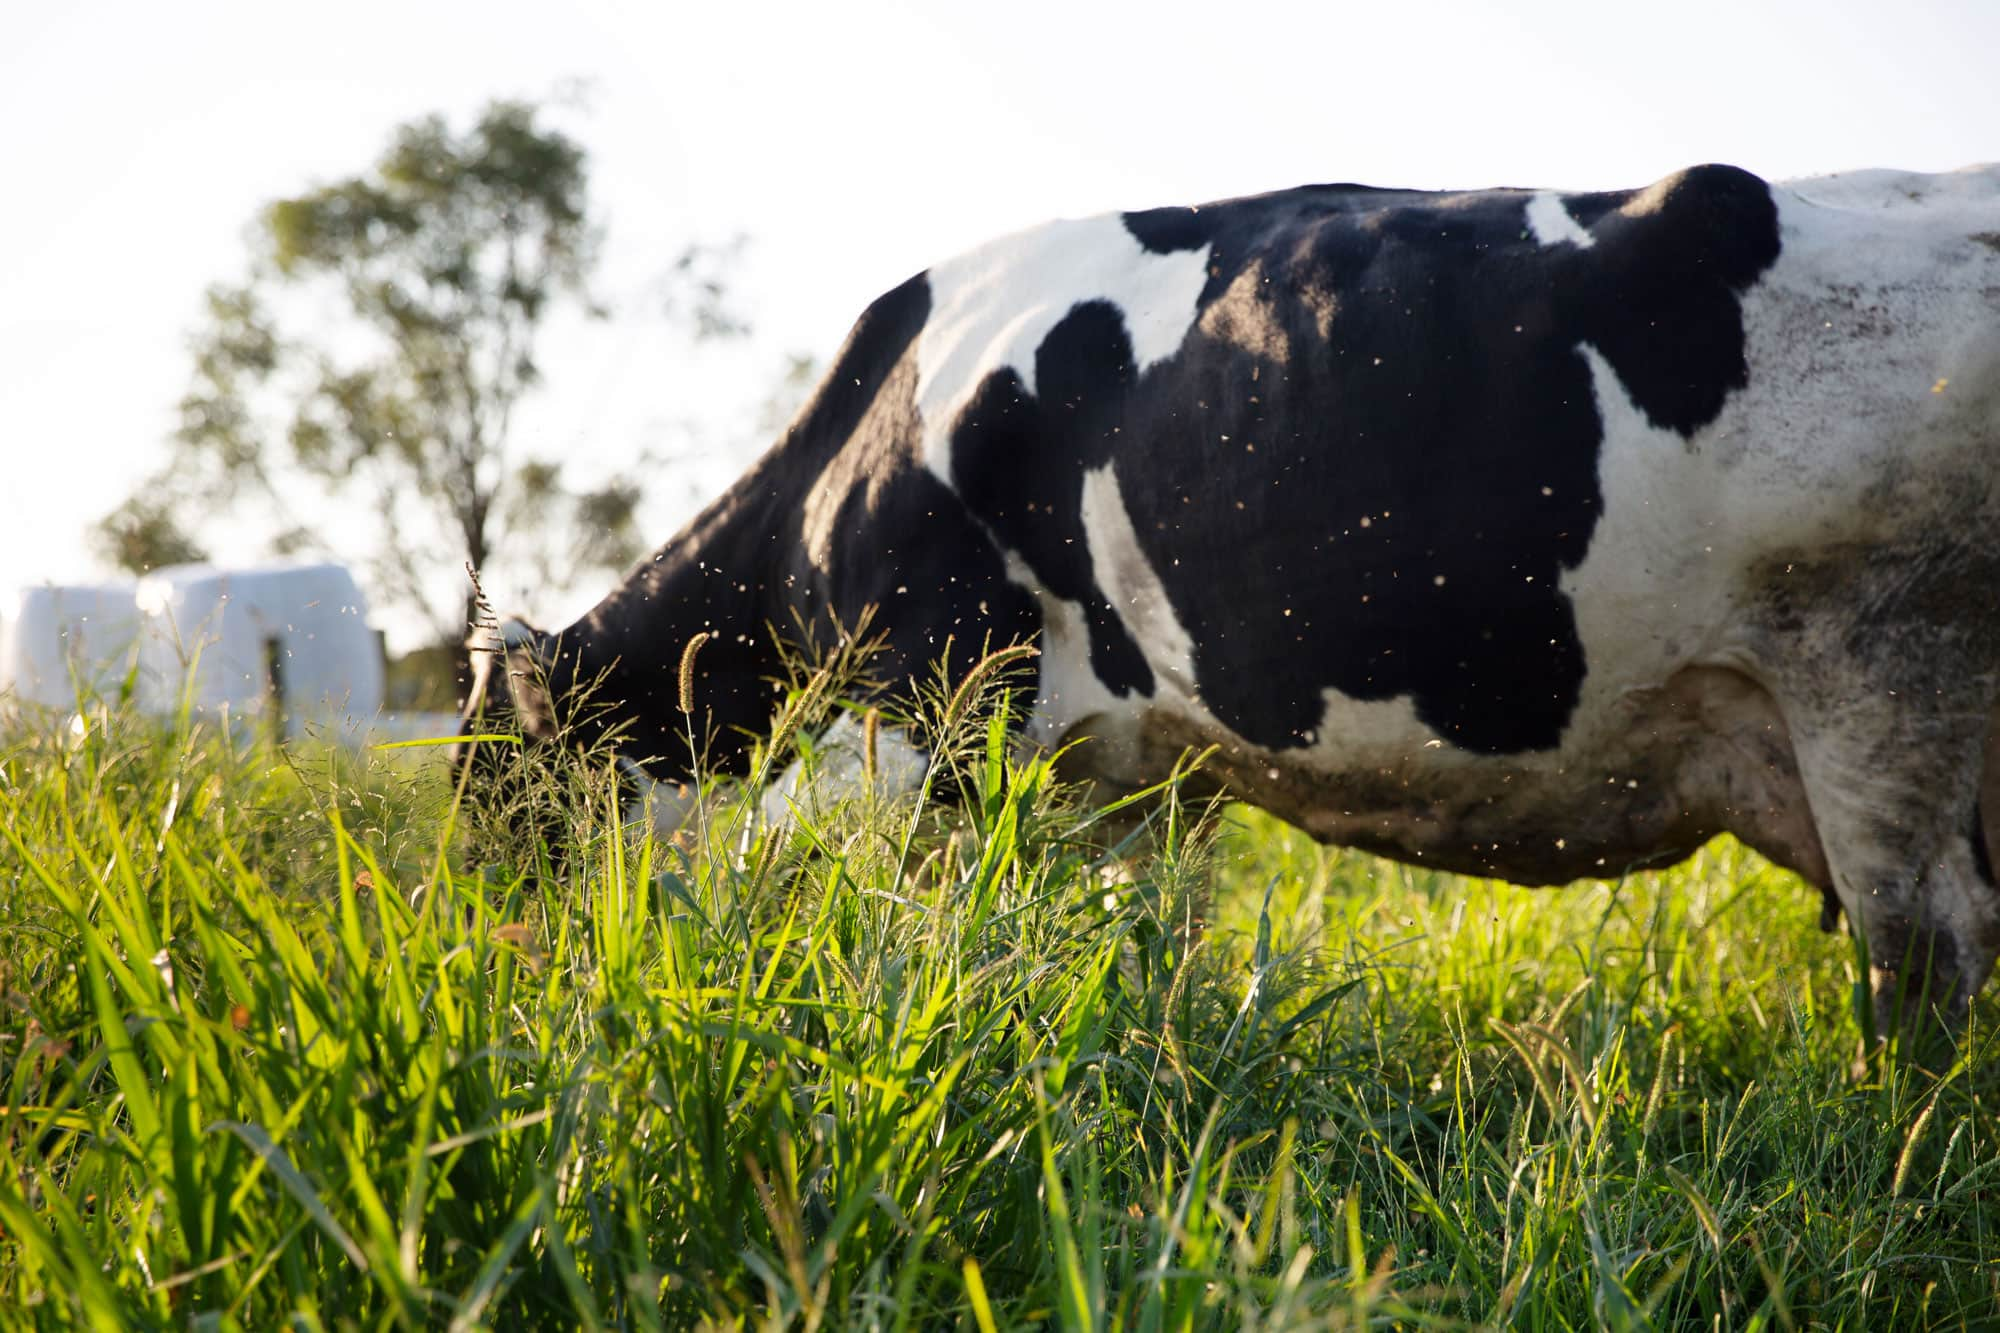 Cow outdoors in a green grassy field eating grass